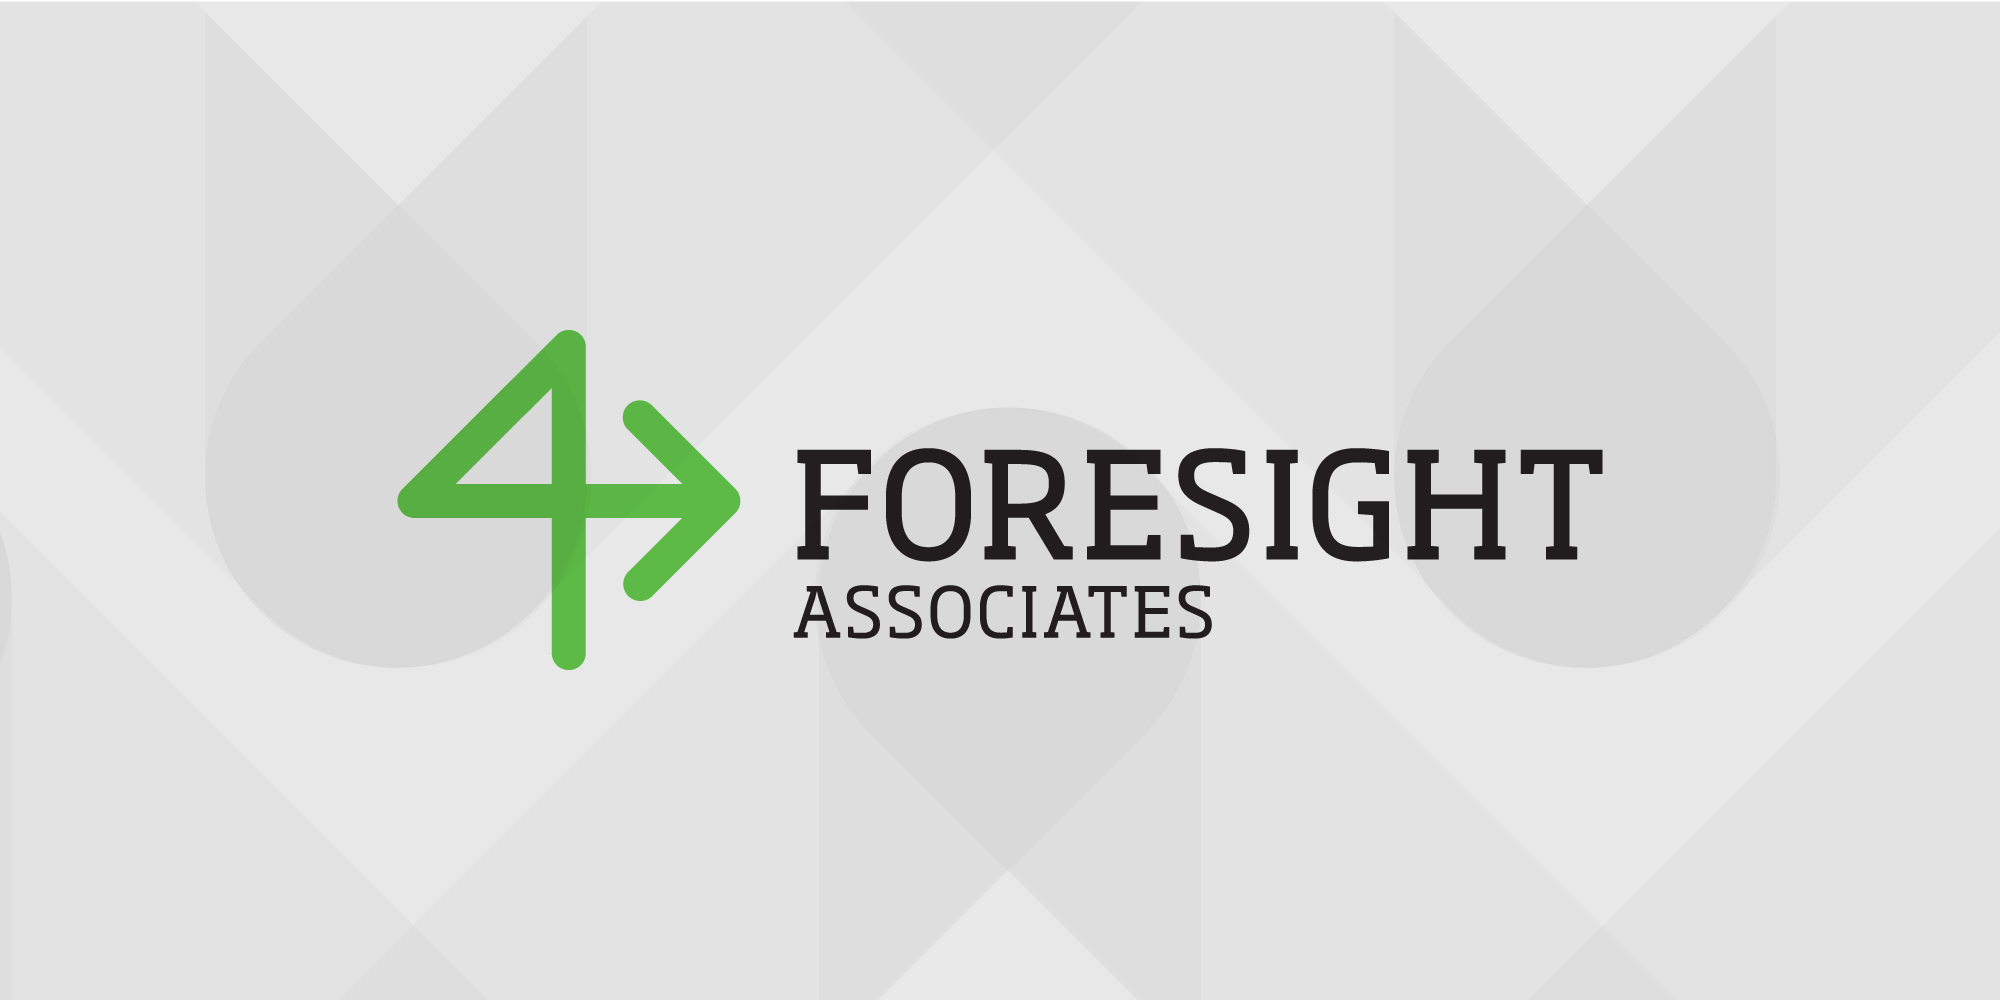 Foresight Placeholder Image showing logo.